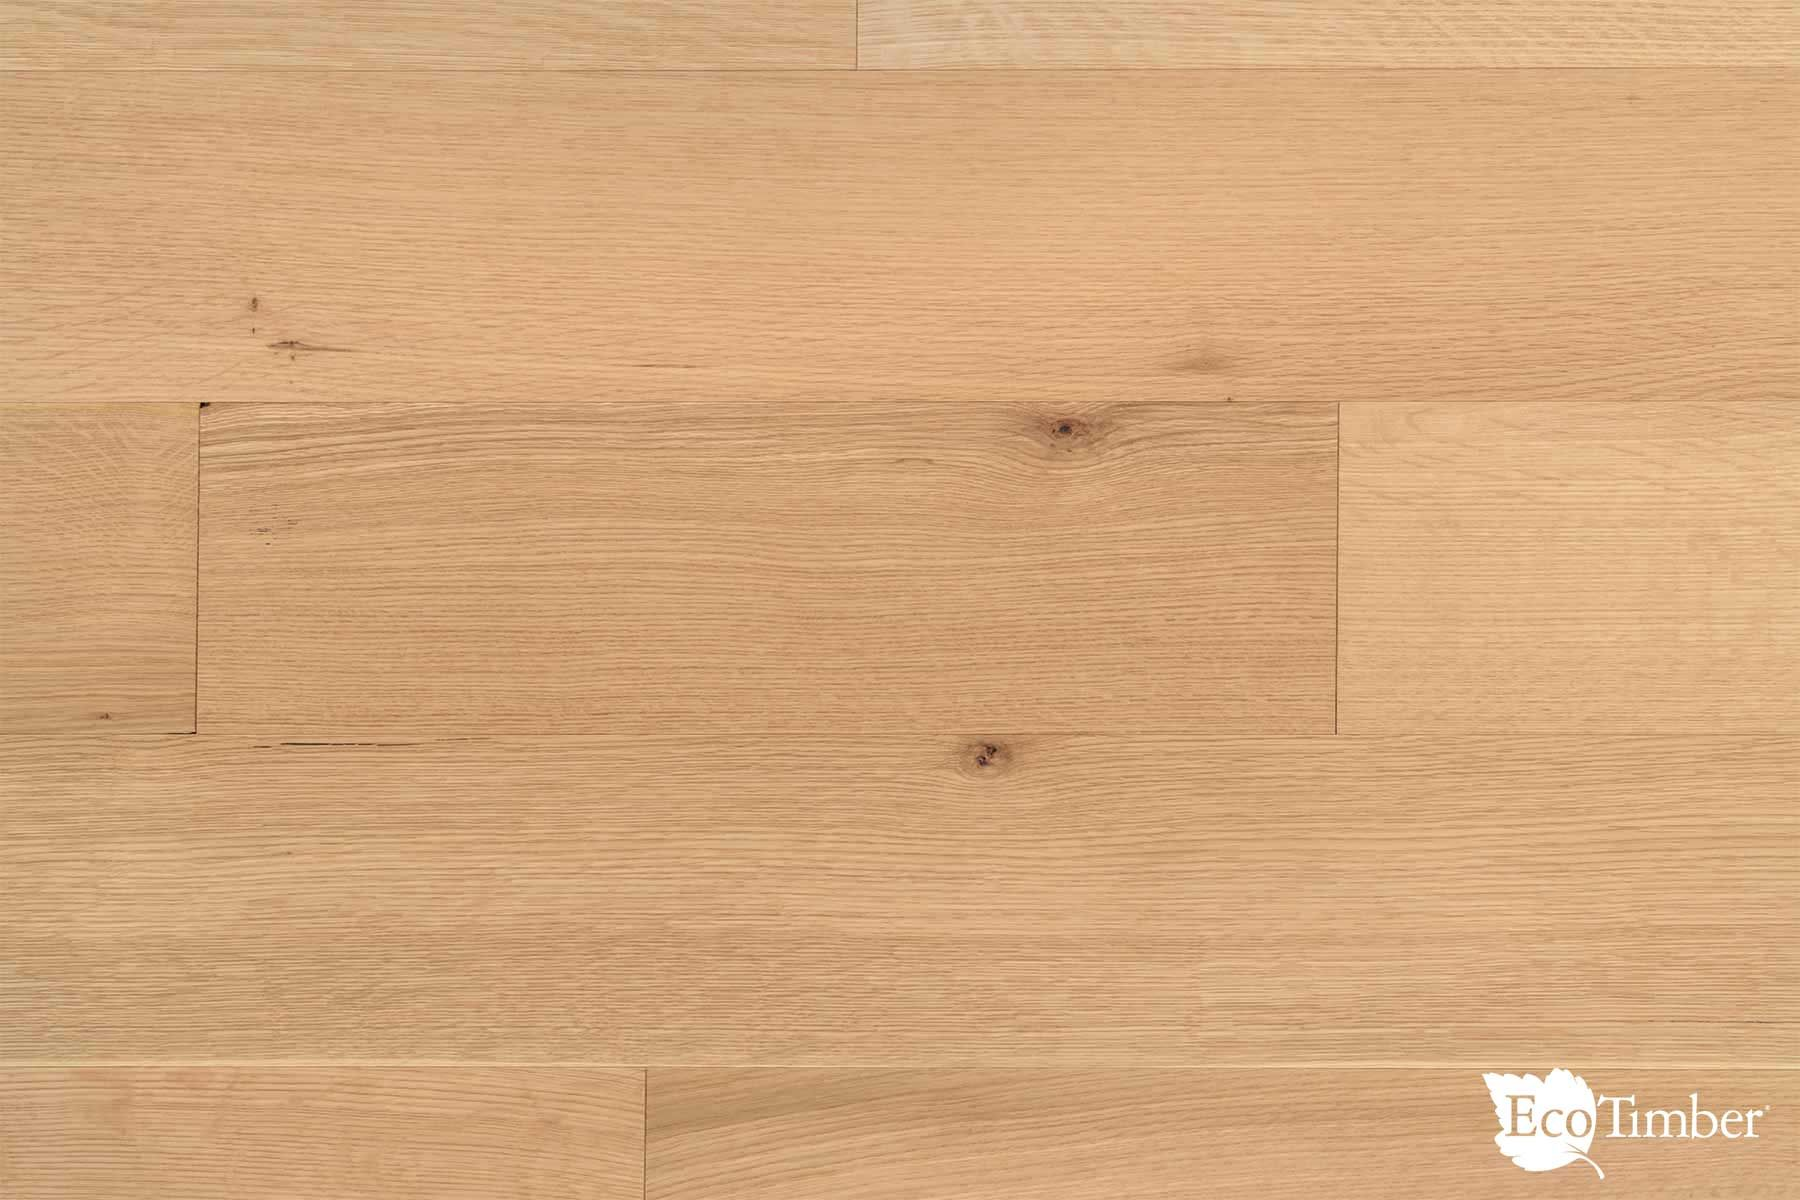 7 Natural White Oak Rift Quartered With An Oil Finish Sustainable Flooring Sustainable Wood Wood Floors